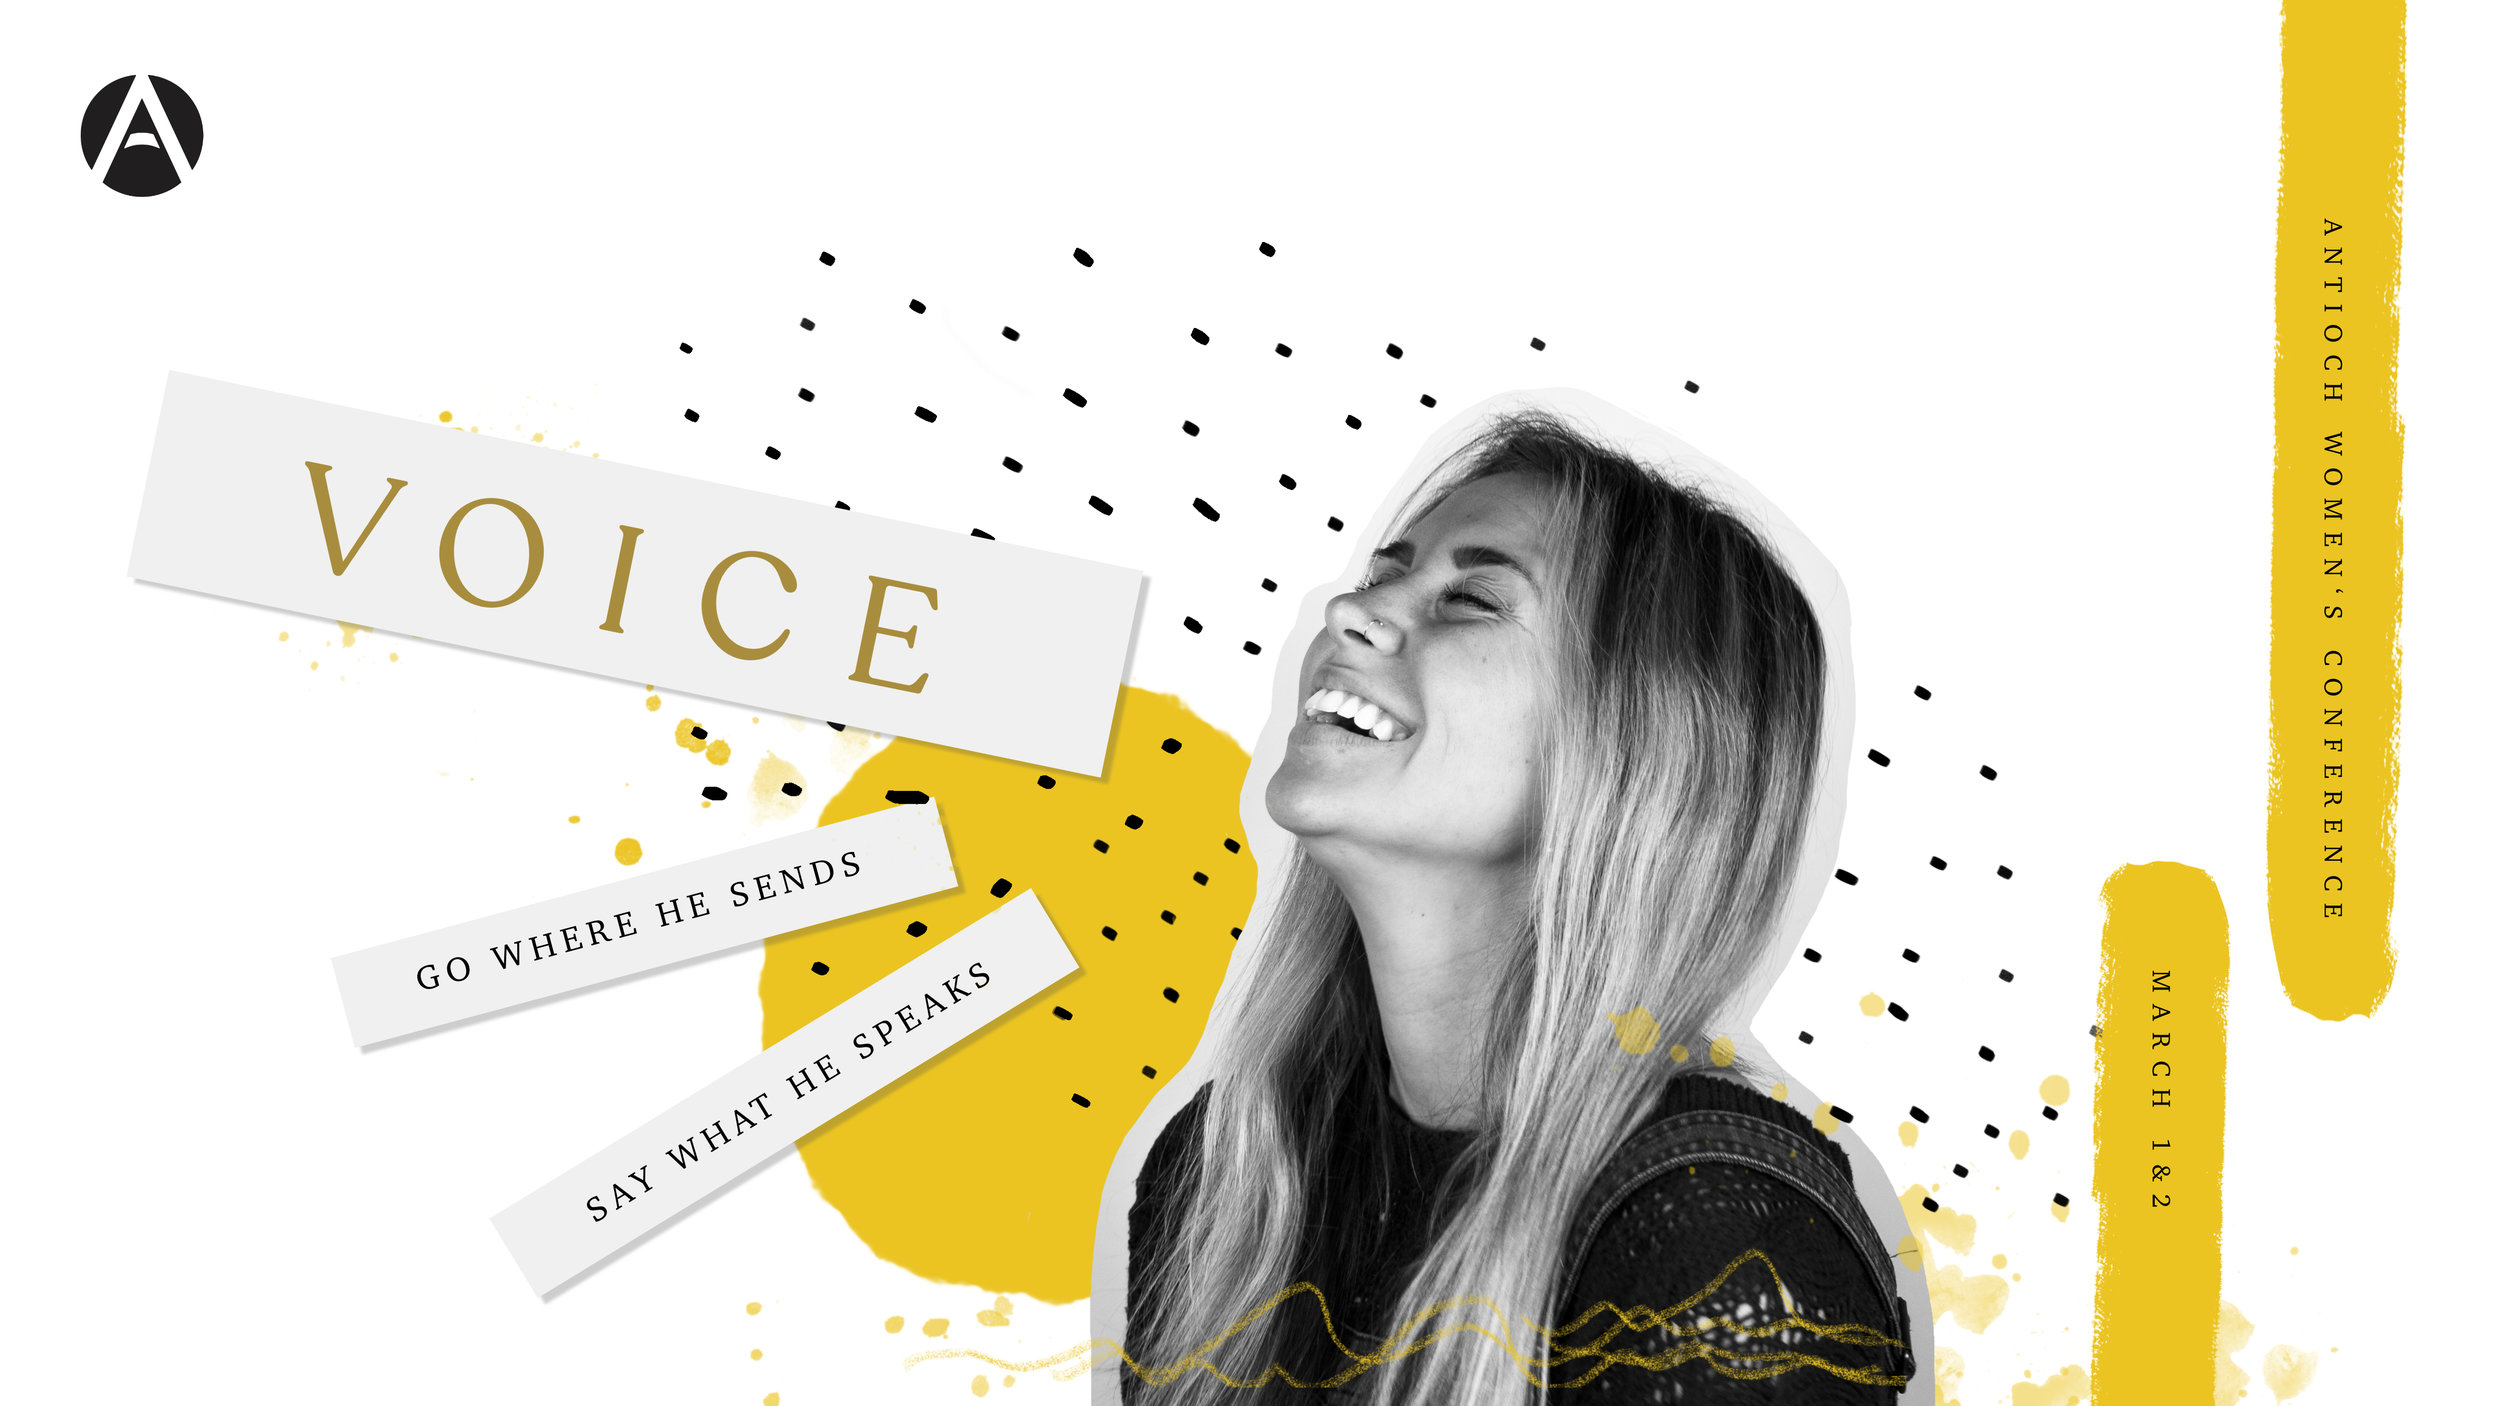 V O I C E - Go where He sends. Say what he speaks.We had a powerful weekend together at our women's conference this year! You can re-listen and/or download the messages from this year's conference here!